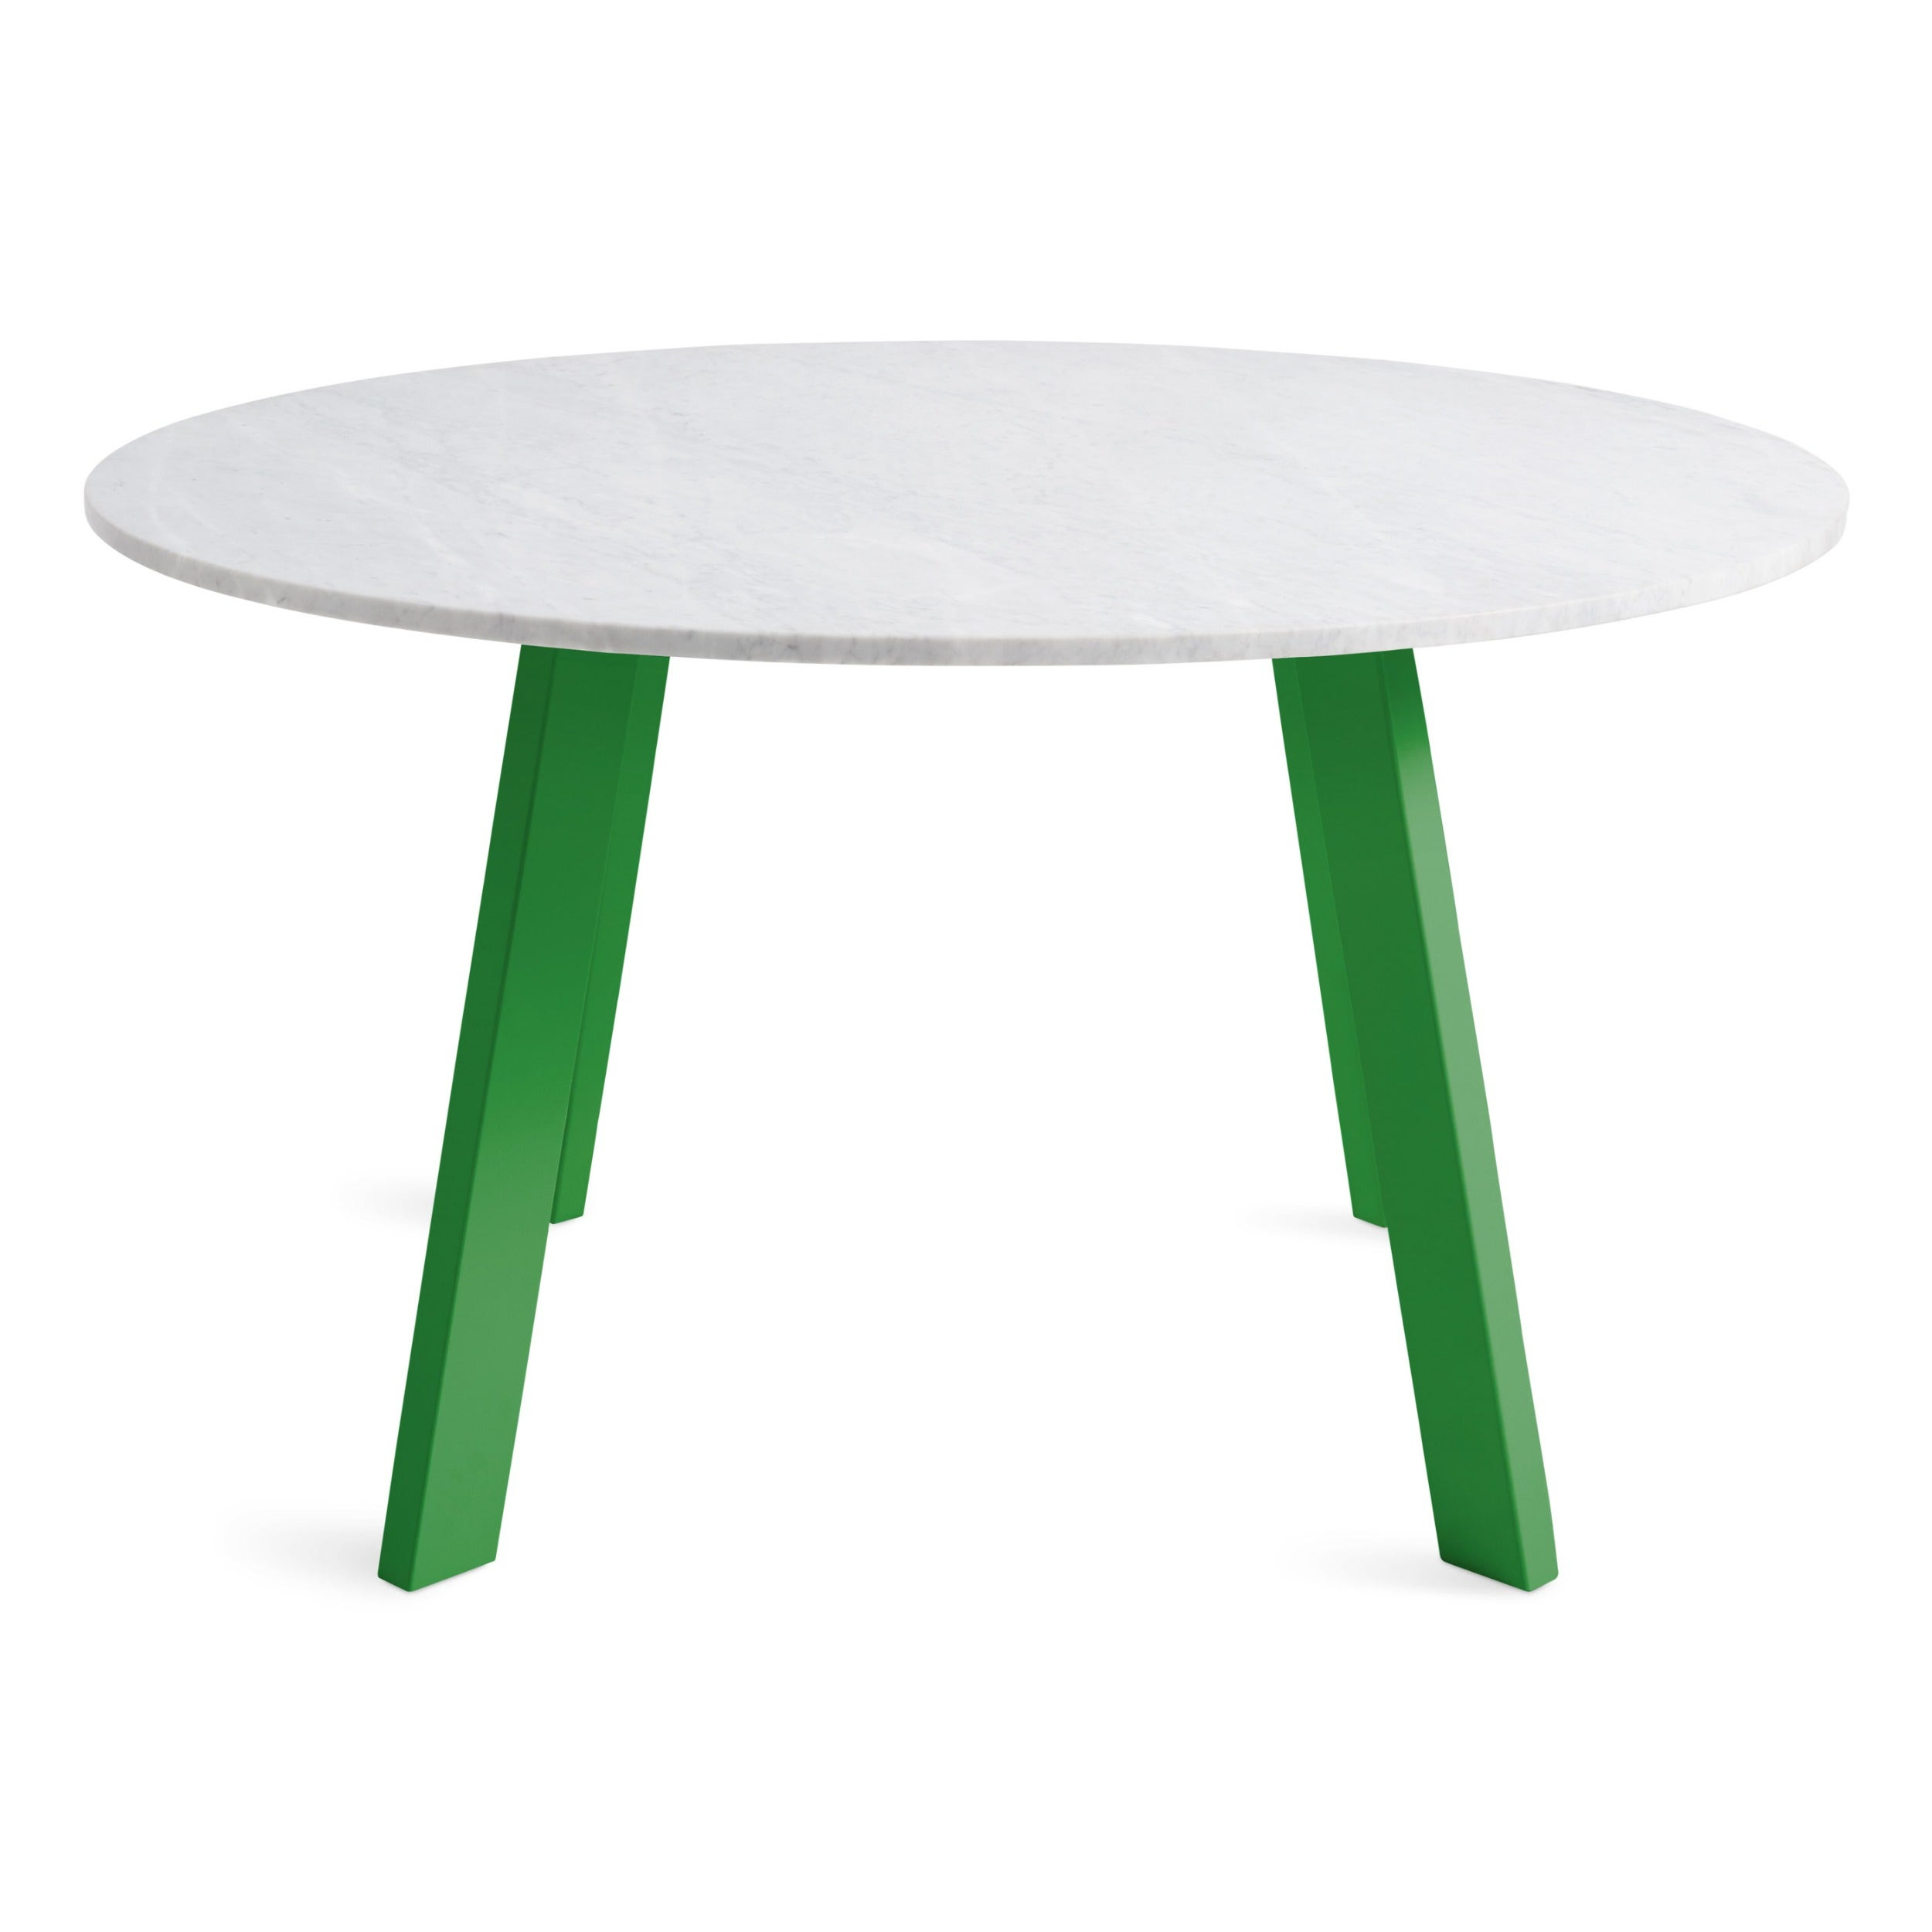 52 Round Table.Right Round 52 Marble Dining Table